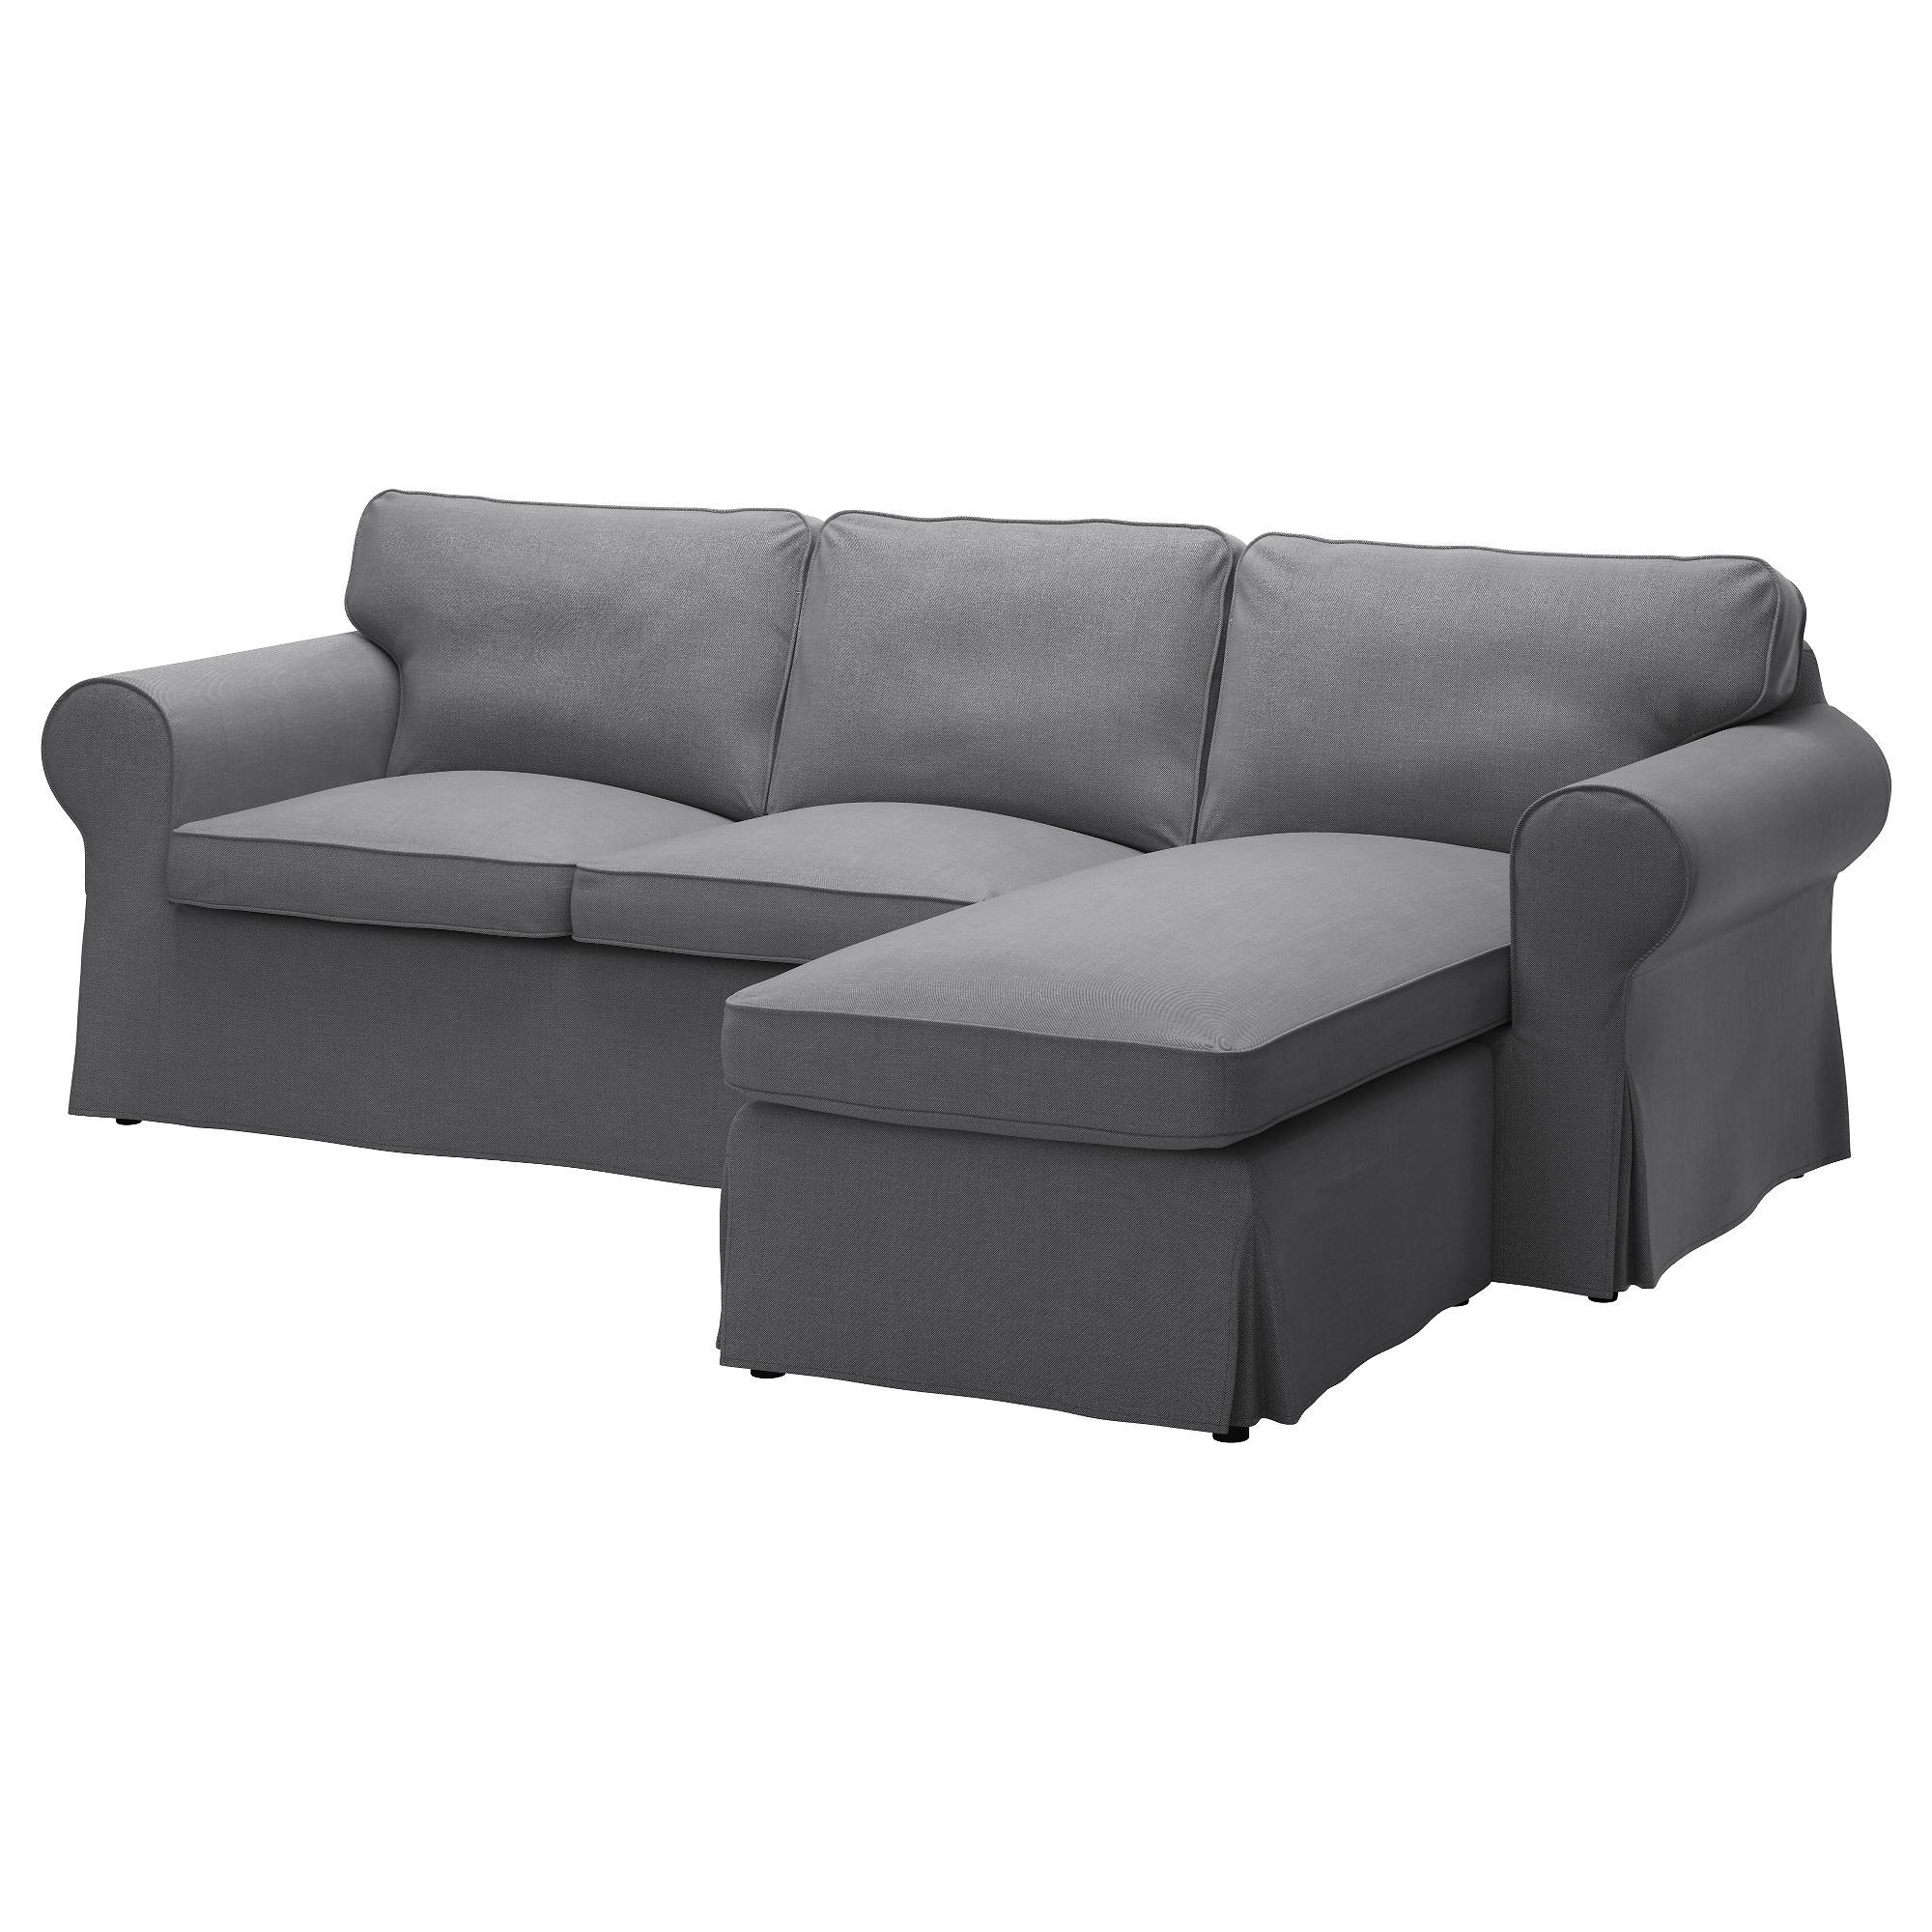 Ektorp Two-Seat Sofa And Chaise Longue Nordvalla Dark Grey - Ikea intended for Sofas With Chaise Longue (Image 9 of 30)